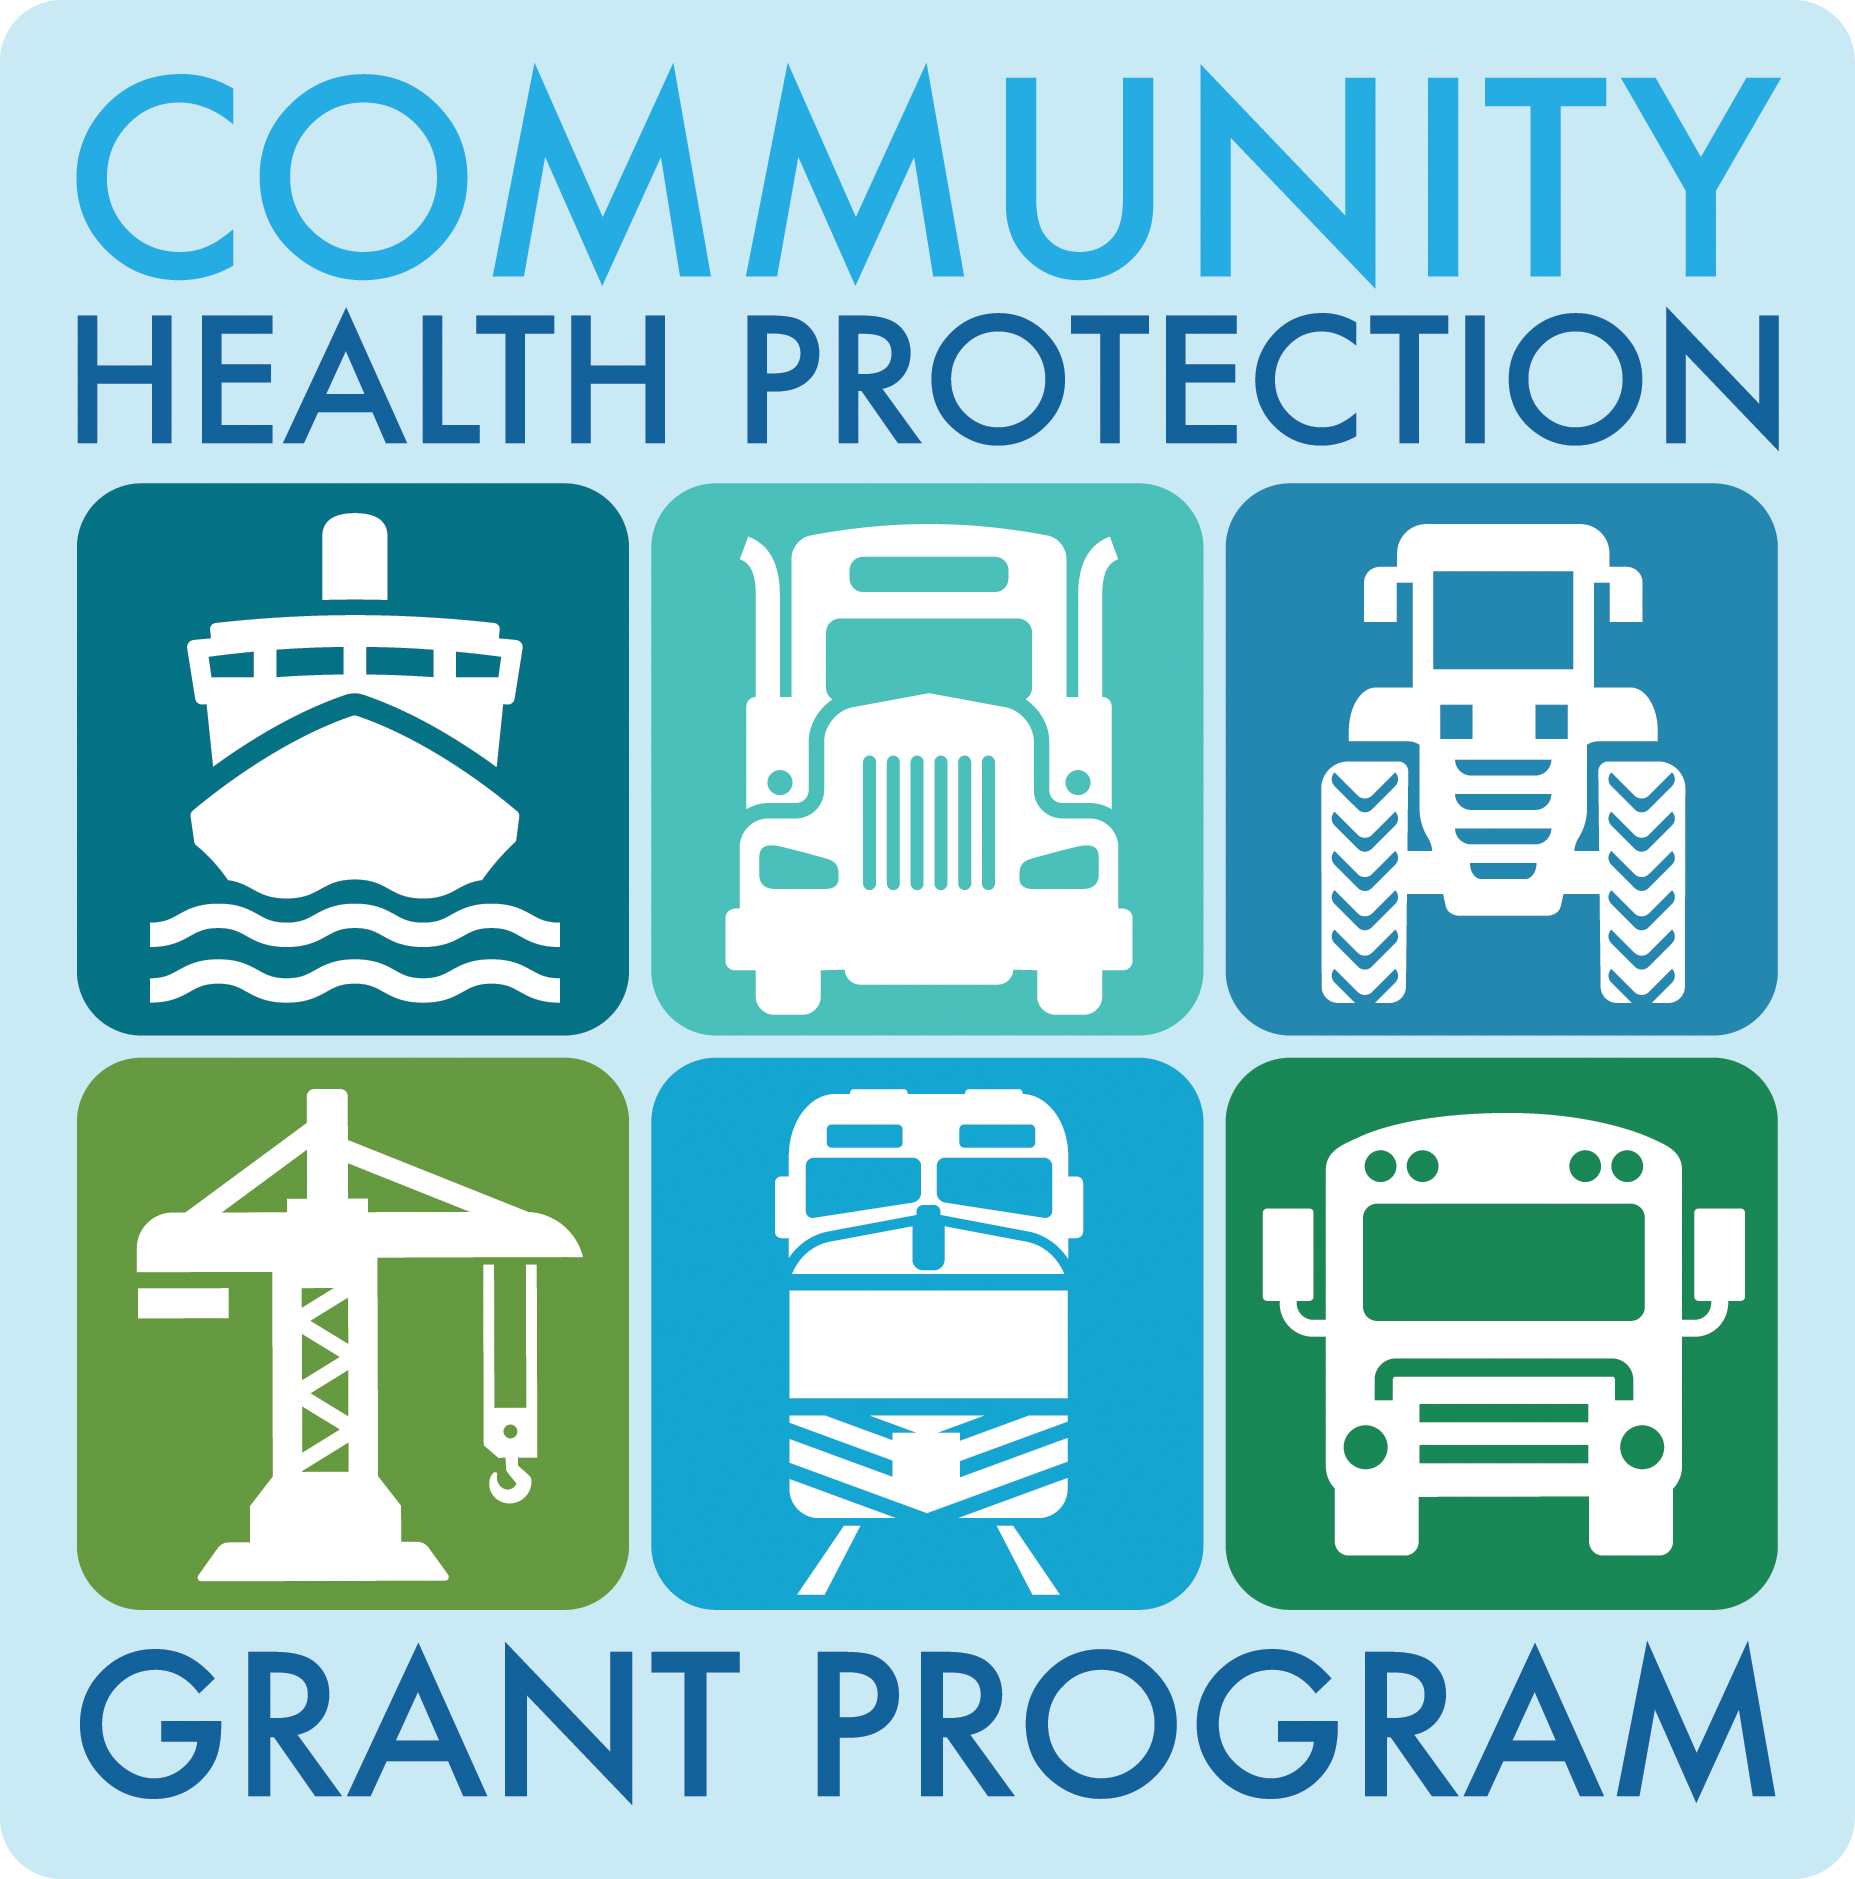 Community Health Protection Program